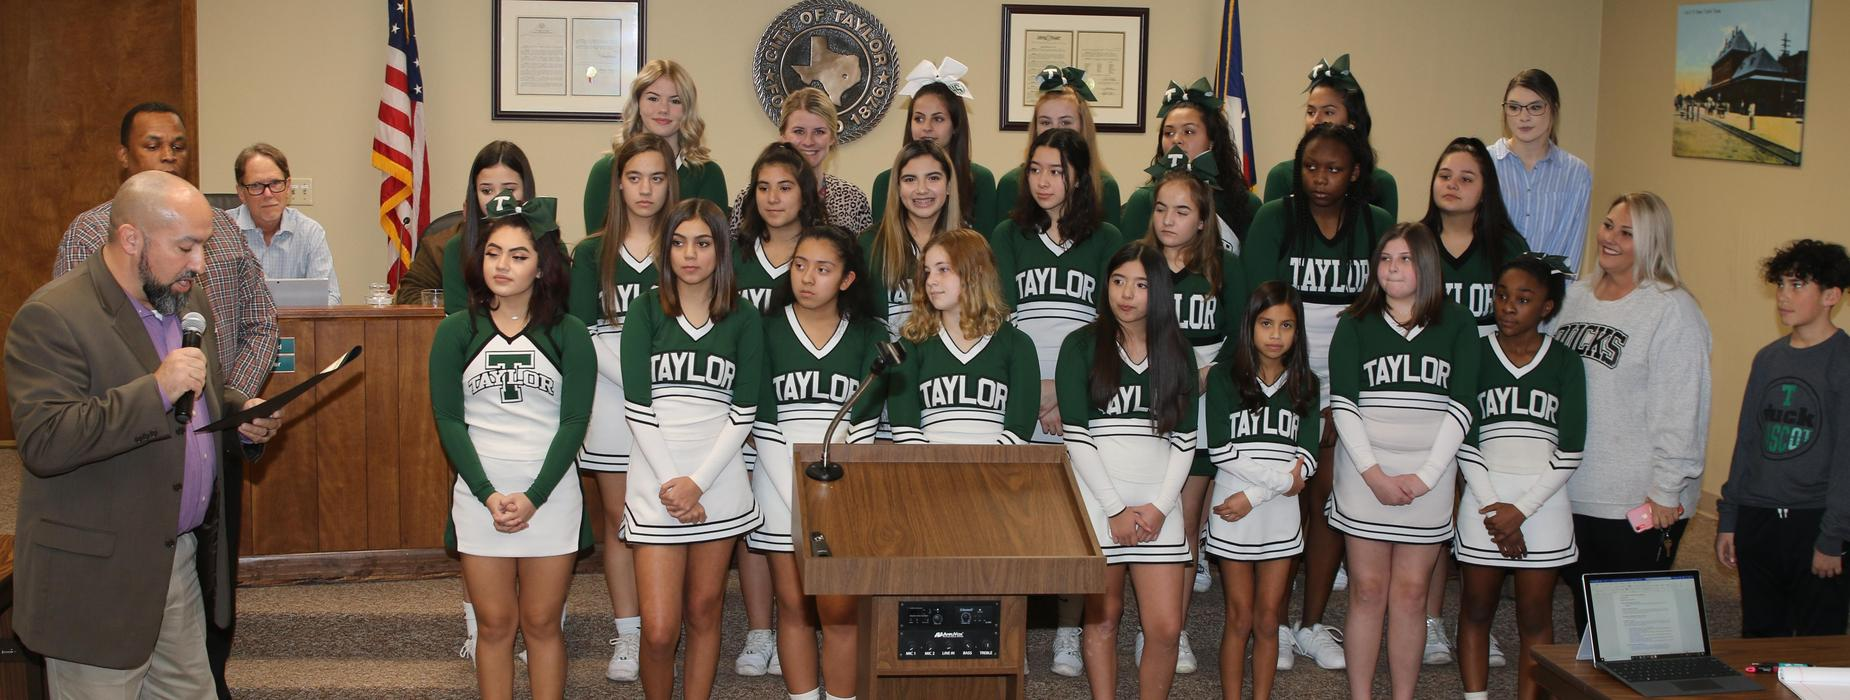 Cheerleaders at city council meeting.